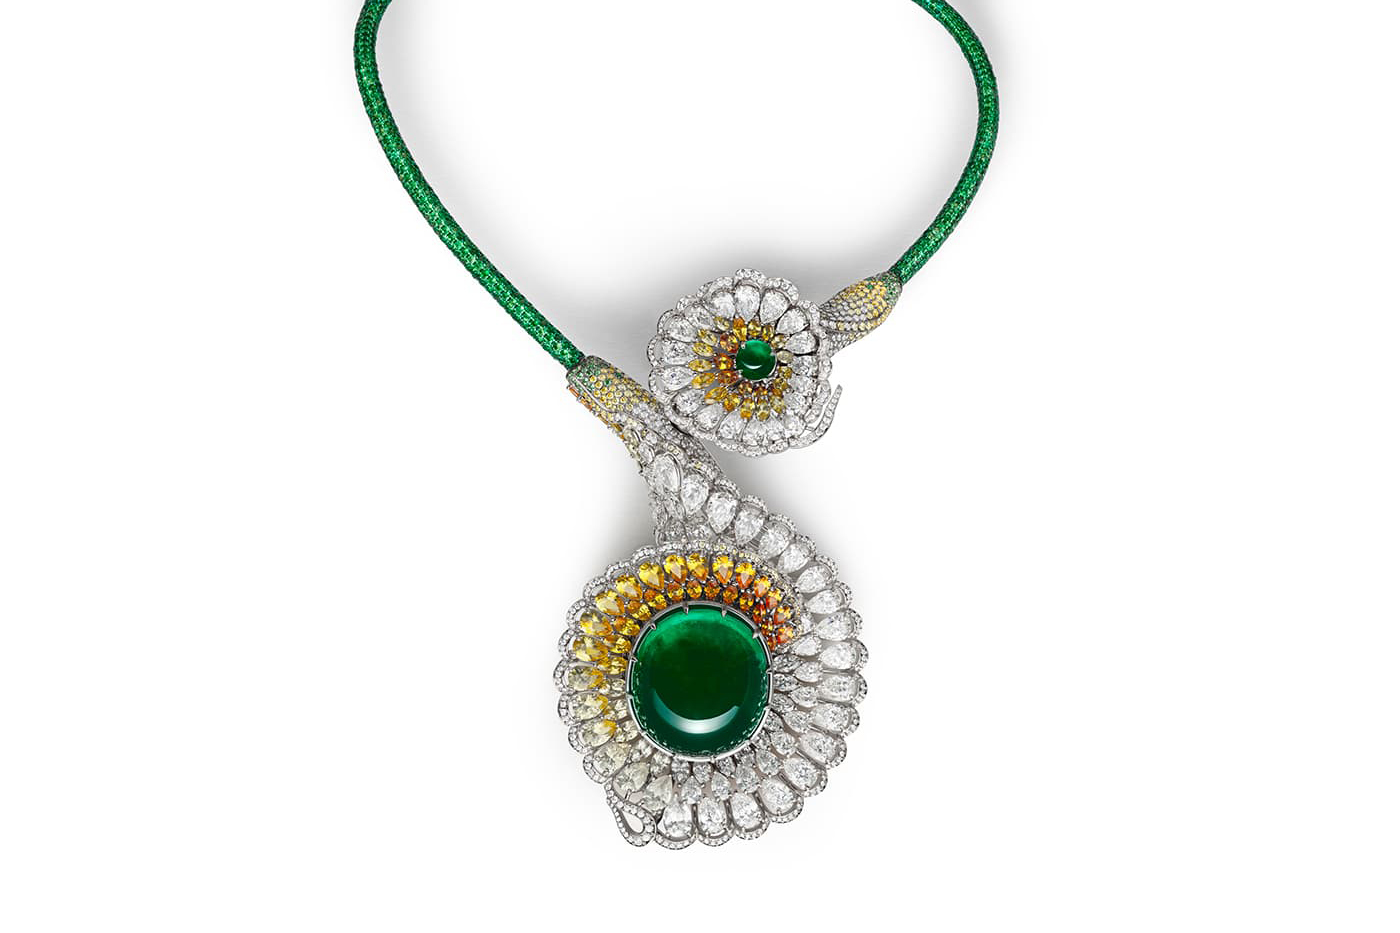 Chopard Red Carpet 2019 collection 'Divine Necklace' open ended choker with 111ct cabochon emerald, yellow and colourless diamonds, sapphires and tsavorites